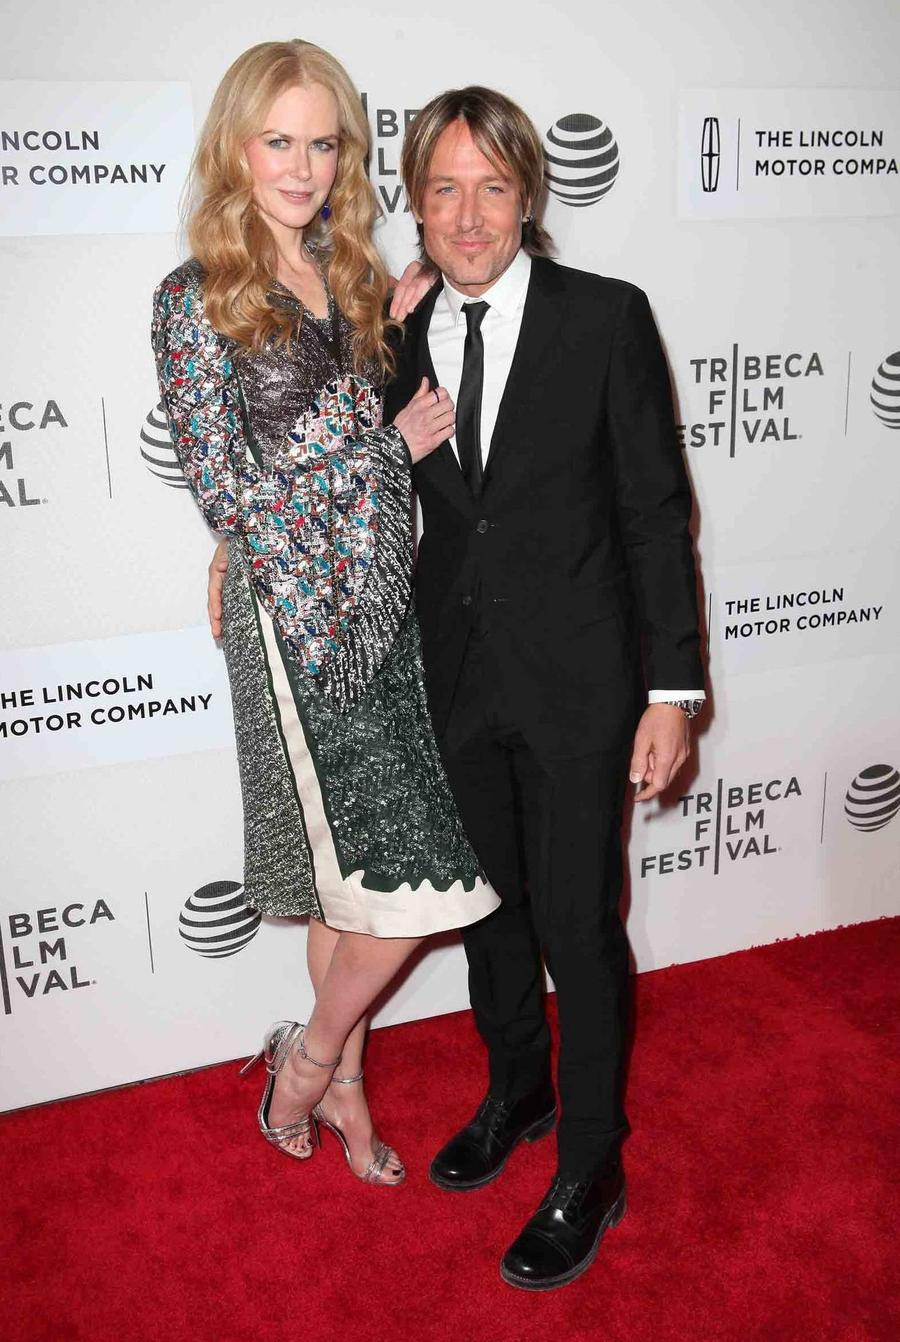 Nicole Kidman And Keith Urban: 'We Don't Need To Renew Our Wedding Vows'